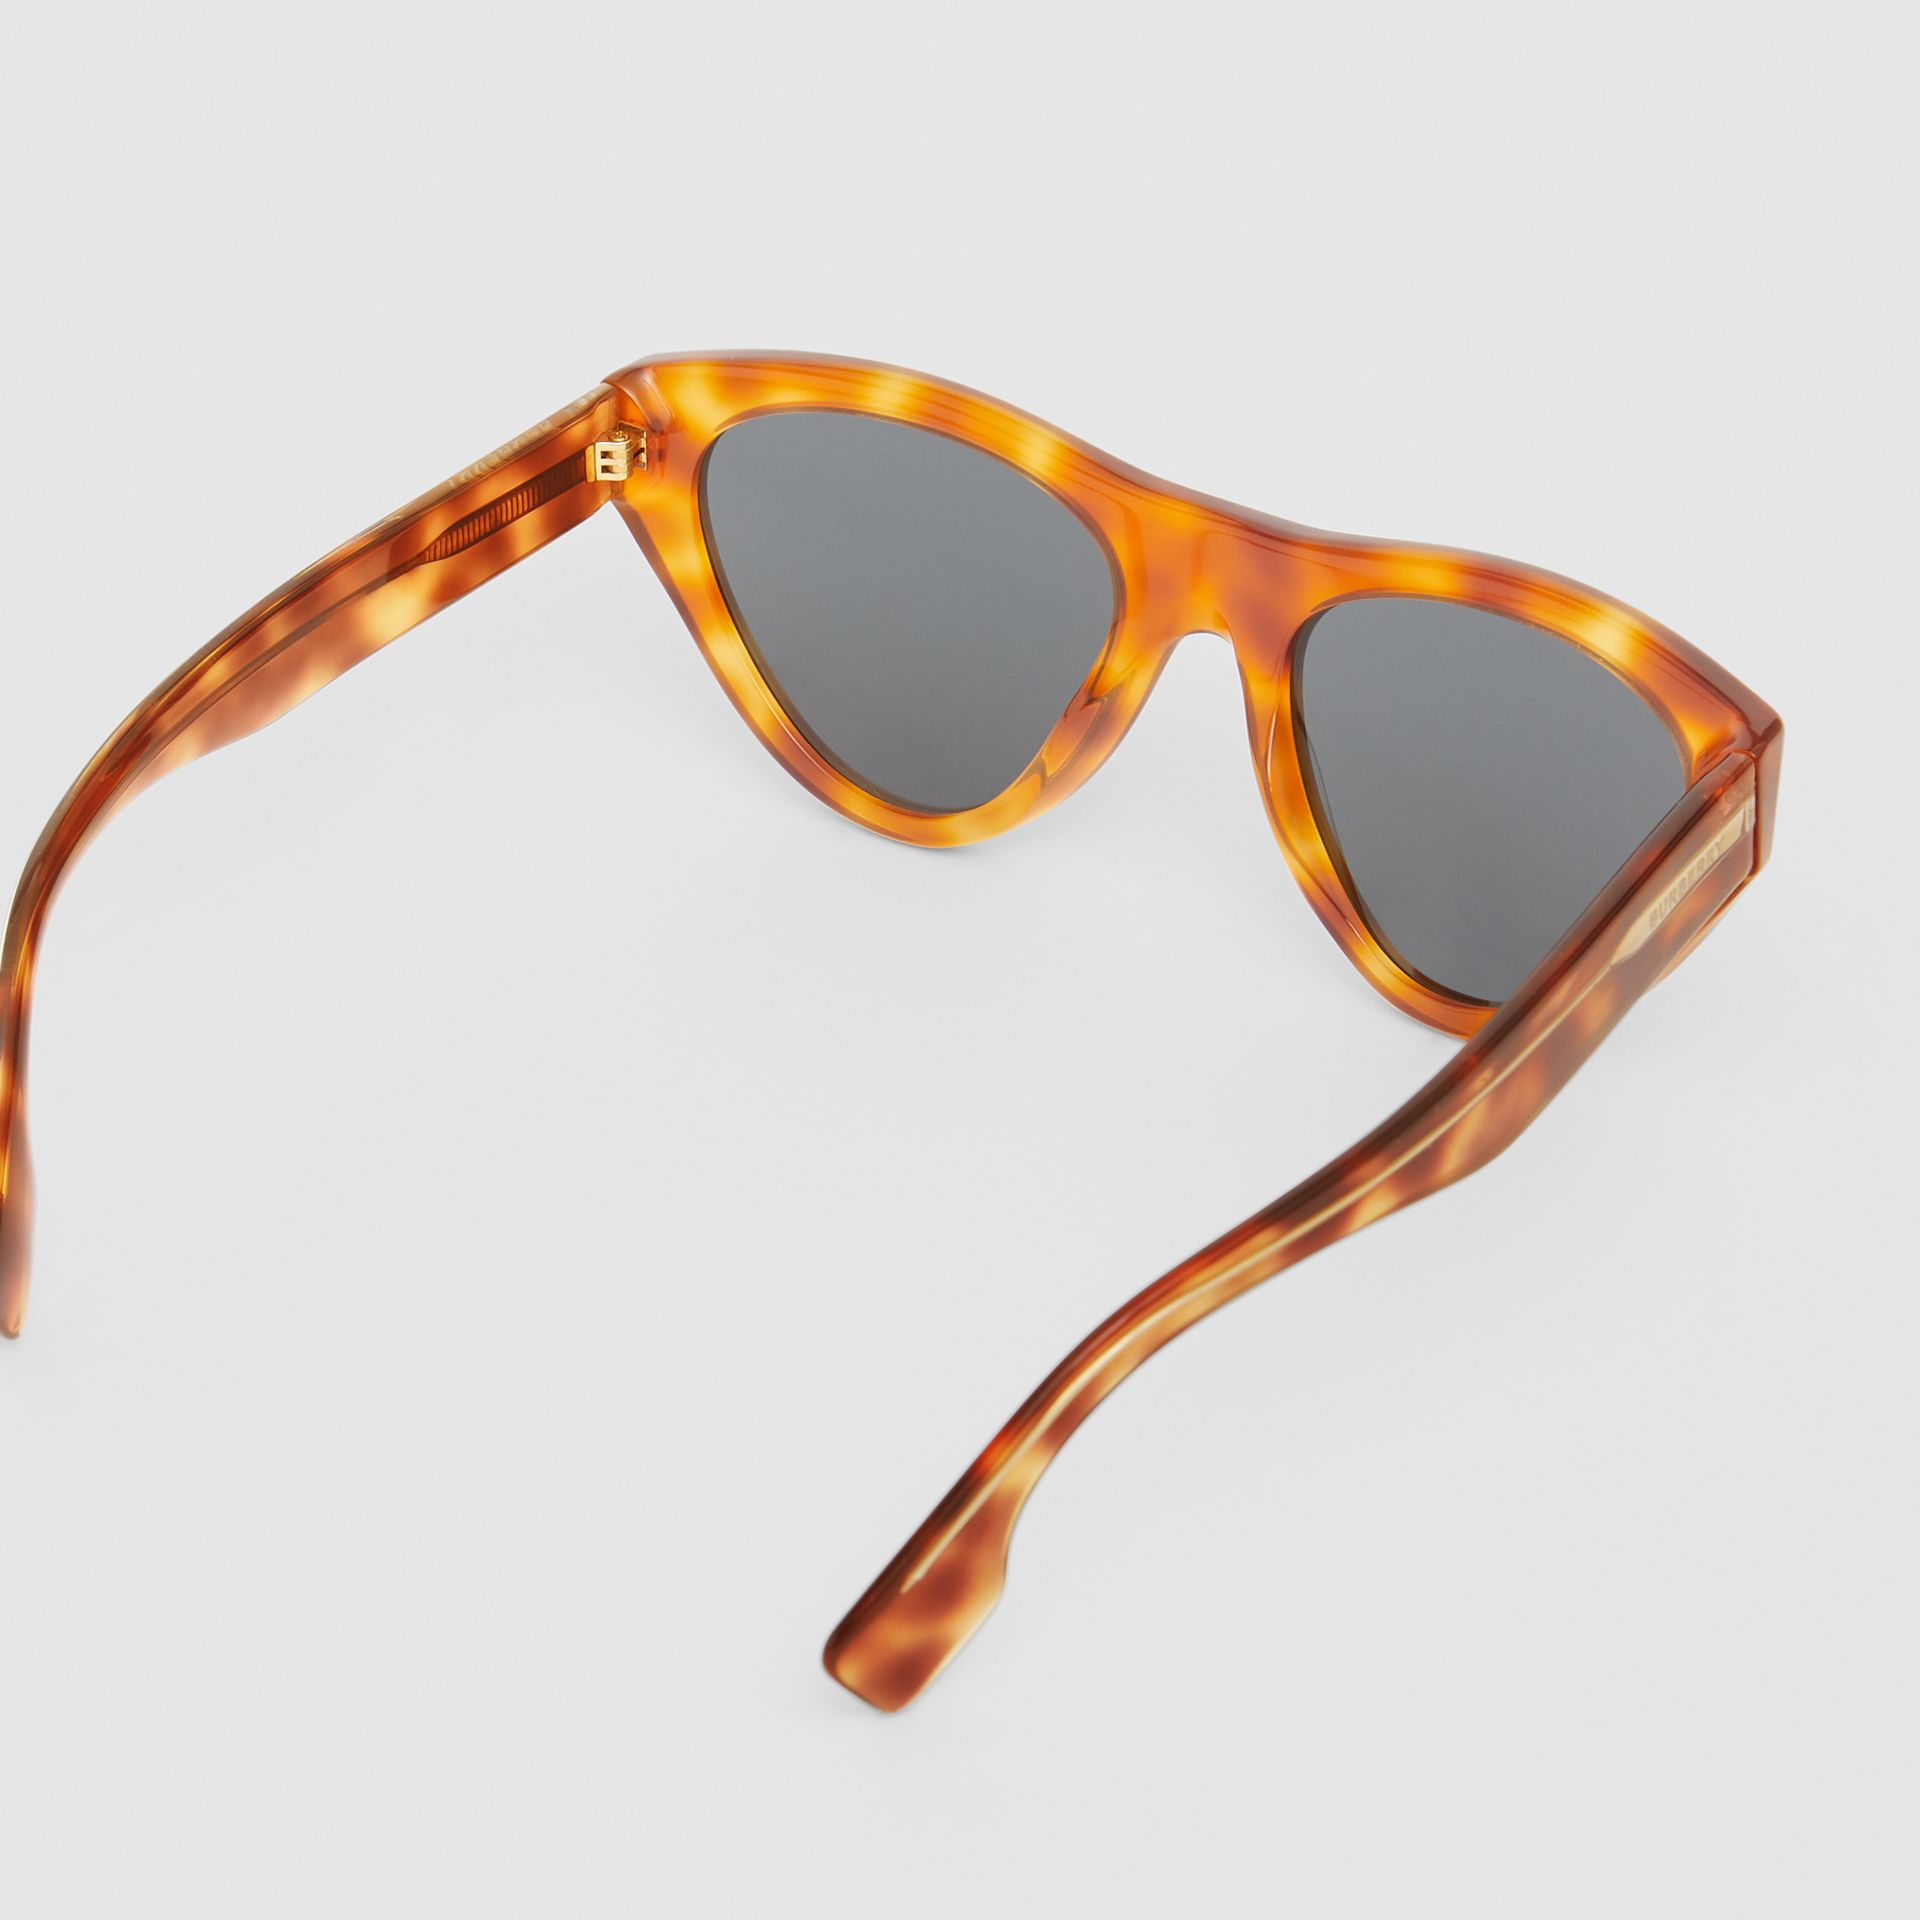 Triangular Frame Sunglasses in Amber Tortoiseshell - Women | Burberry - gallery image 4